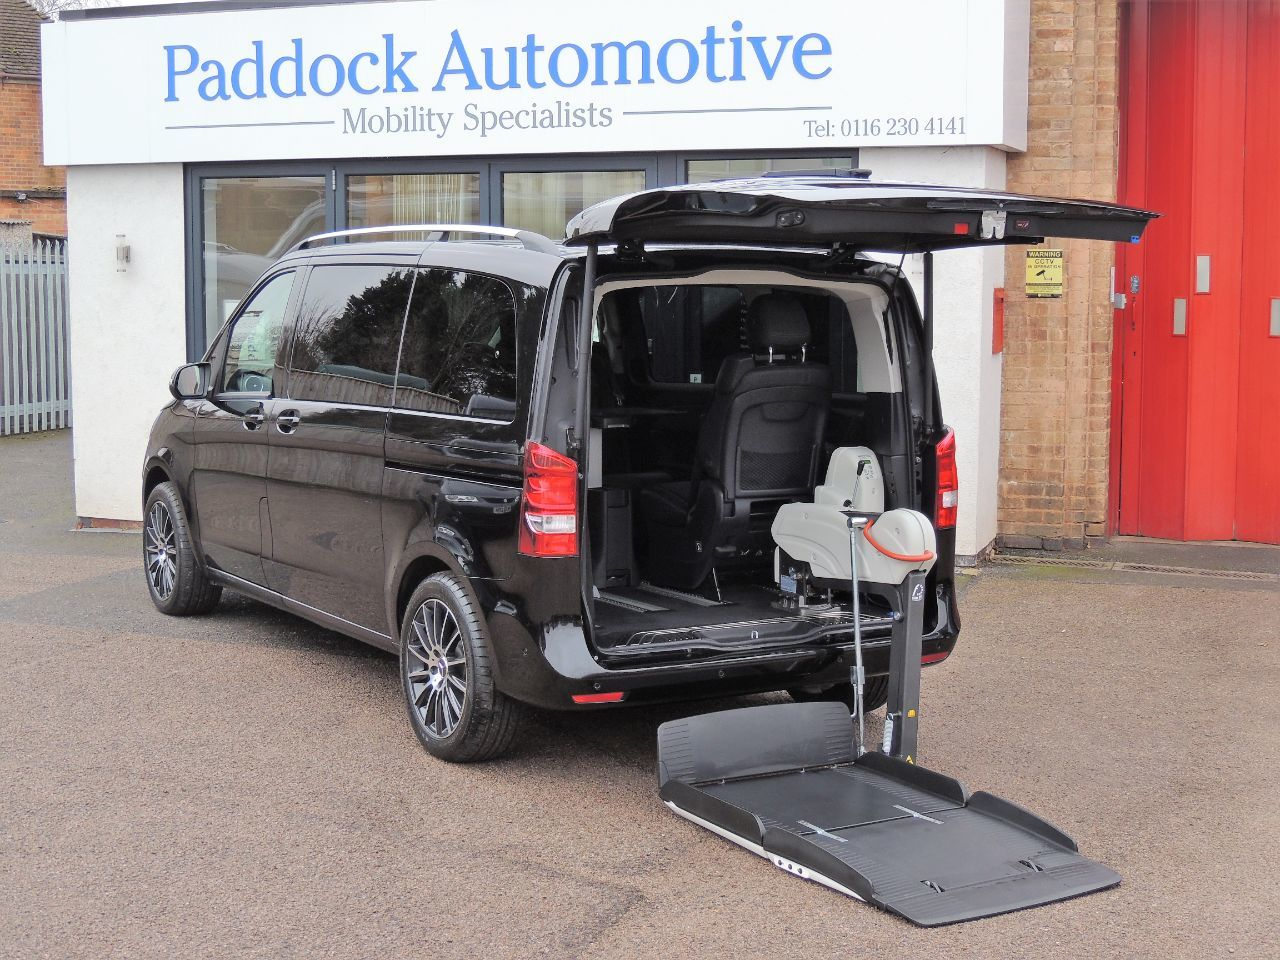 Mercedes-Benz V Class 2.2 V220 BlueTEC SE Auto Disabled Wheelchair Adapted Vehicle WAV Wheelchair Adapted Diesel Obsidian Black Mica